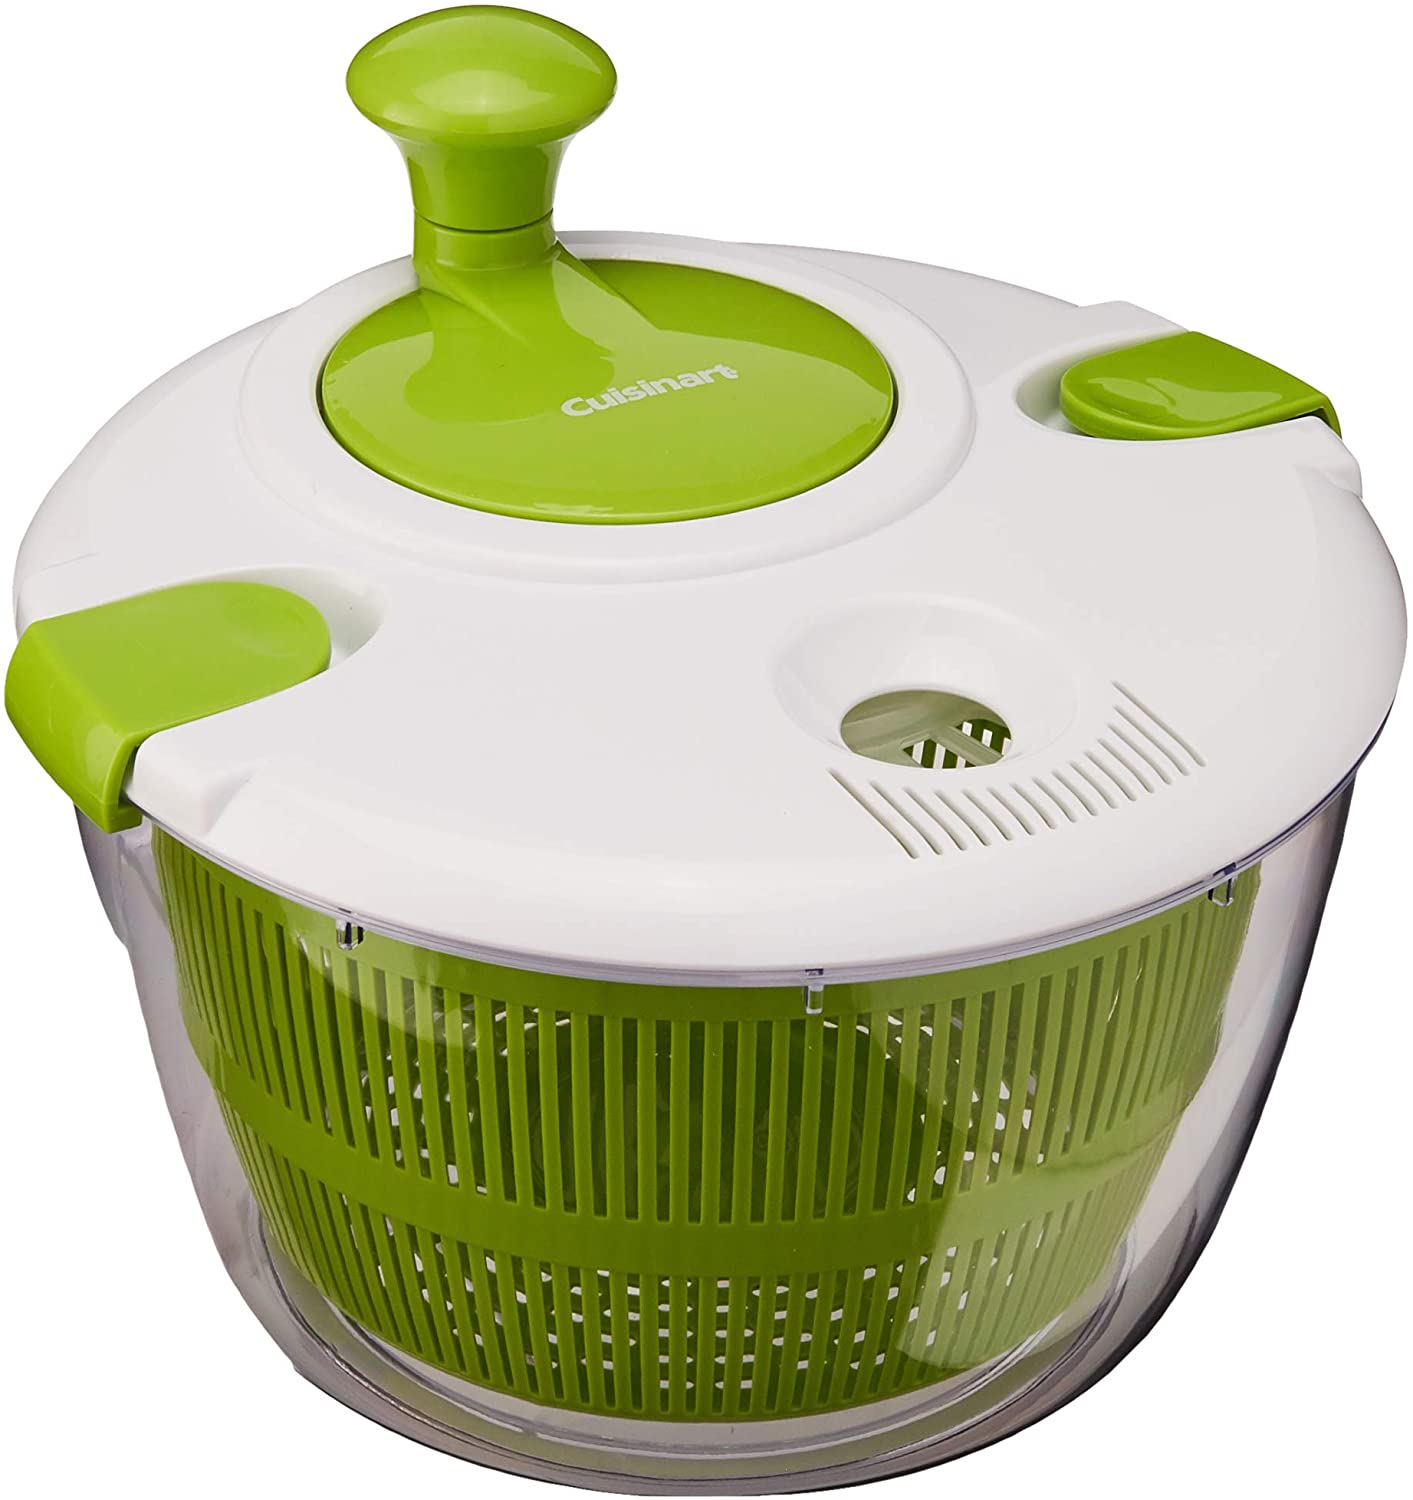 A Cuisinart Salad Spinner on white background